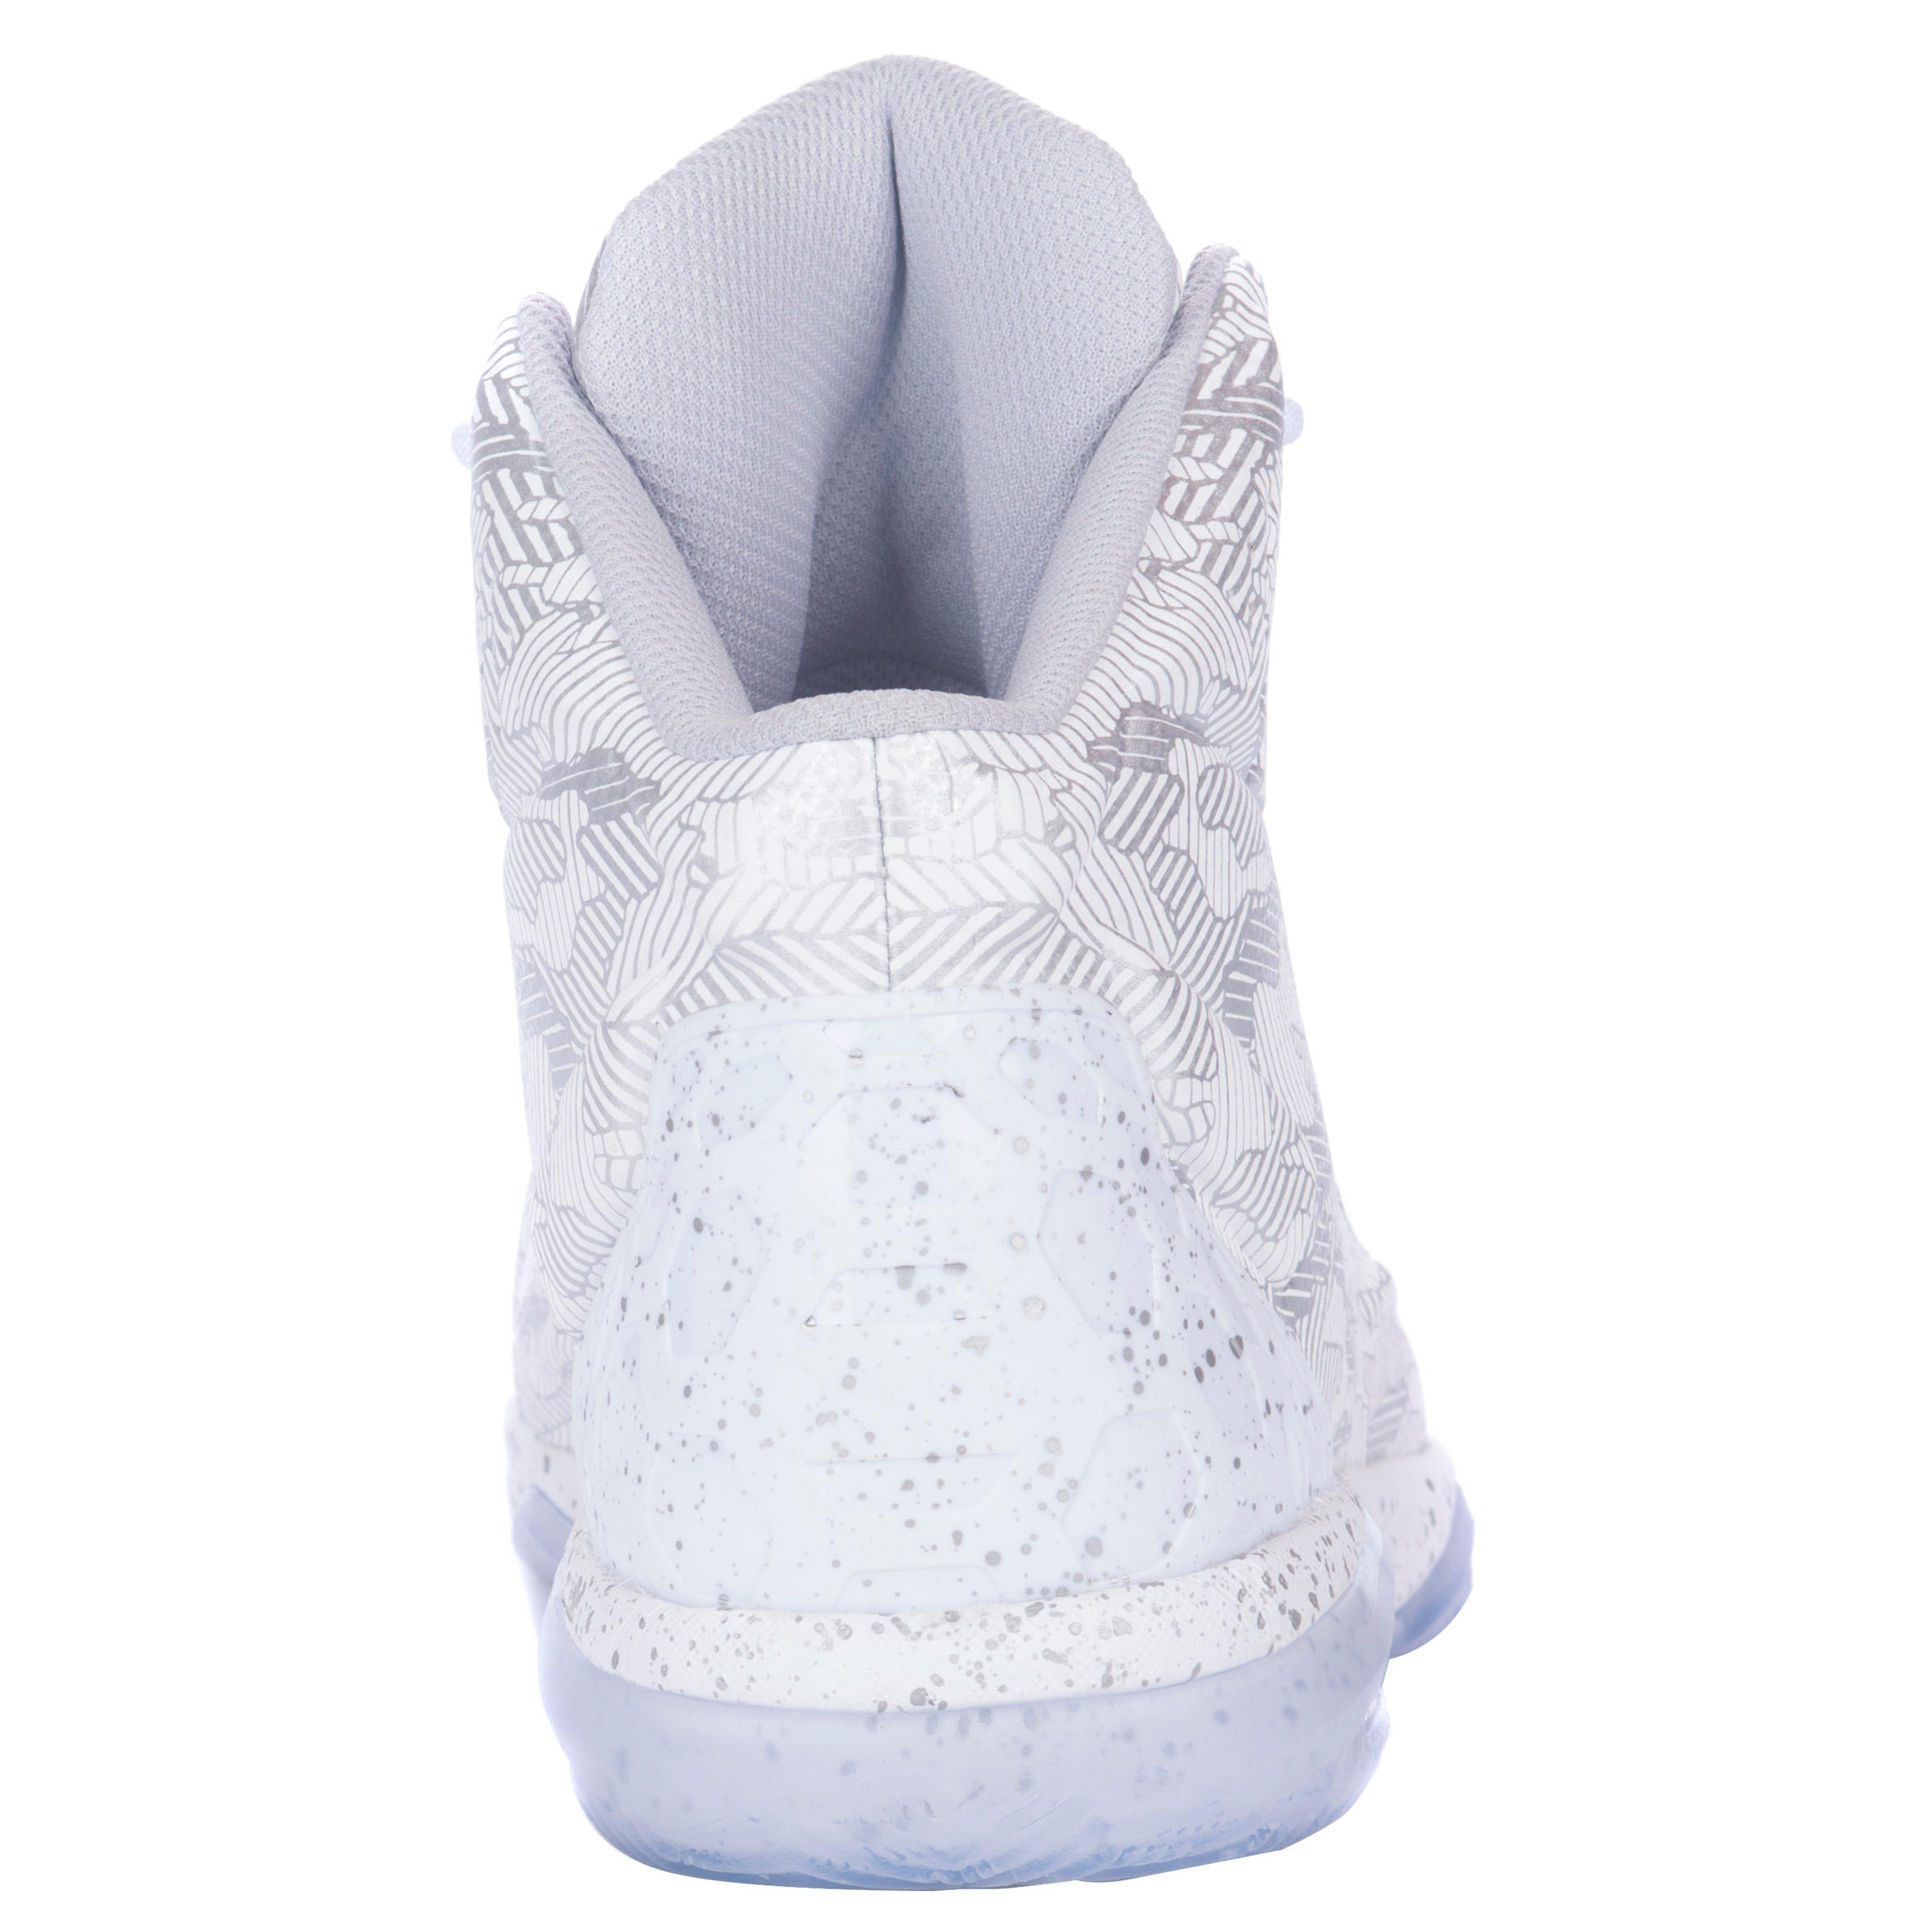 CHAUSSURE BASKETBALL TARMAK HOMME/FEMME CONFIRME STRONG 500 BLANC